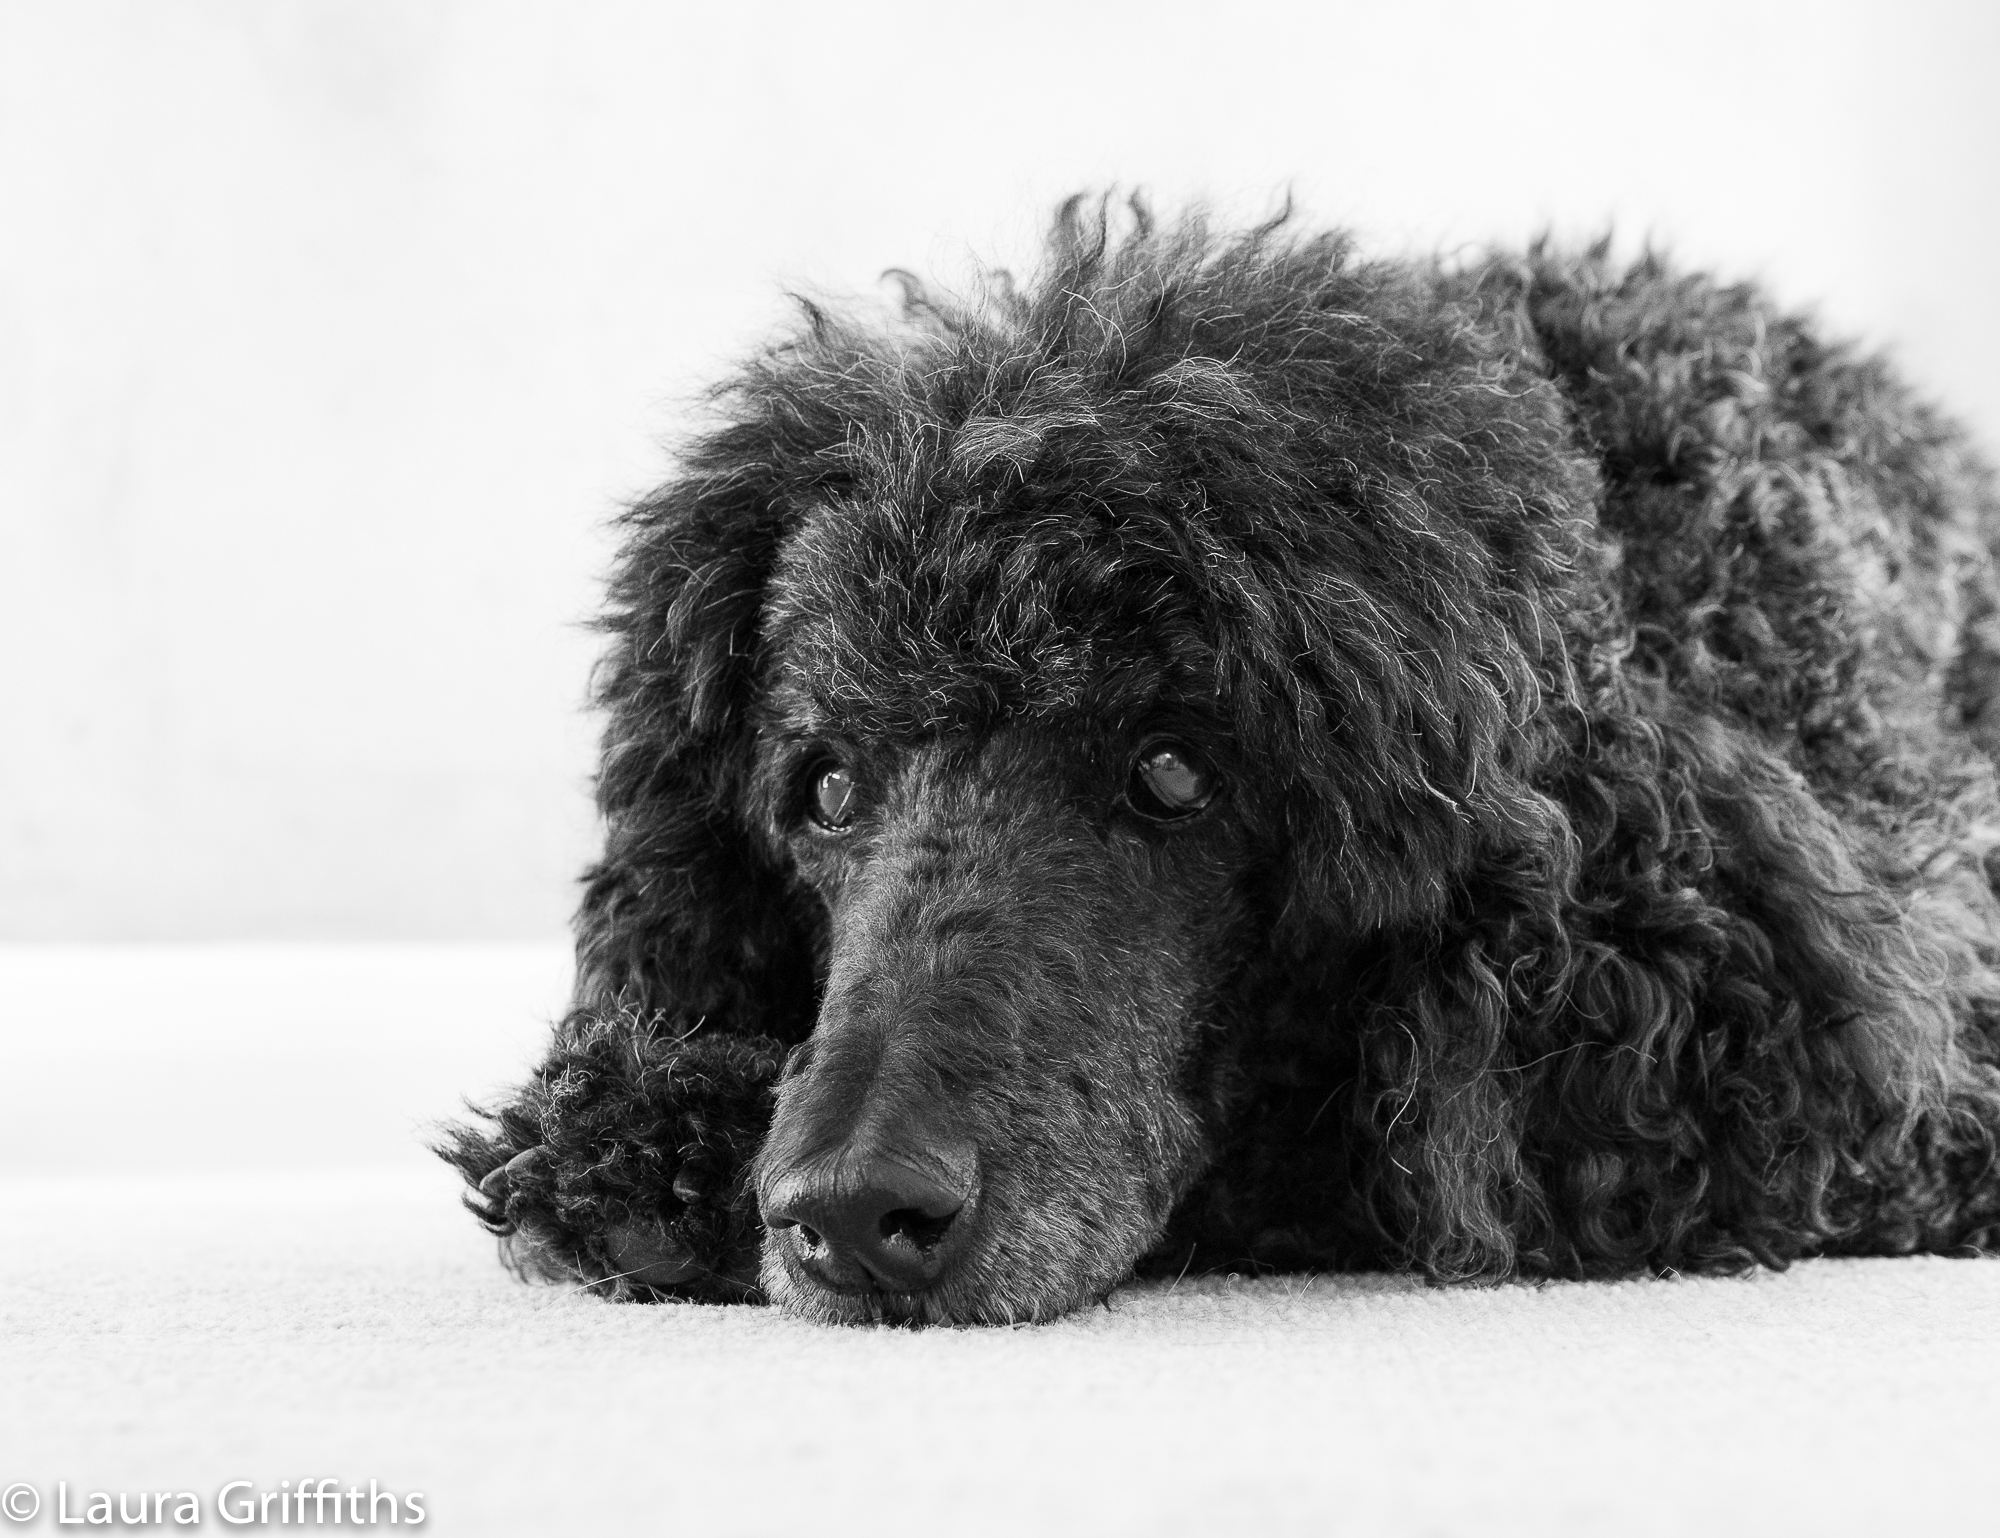 Family standard poodle co-operating wonderfully